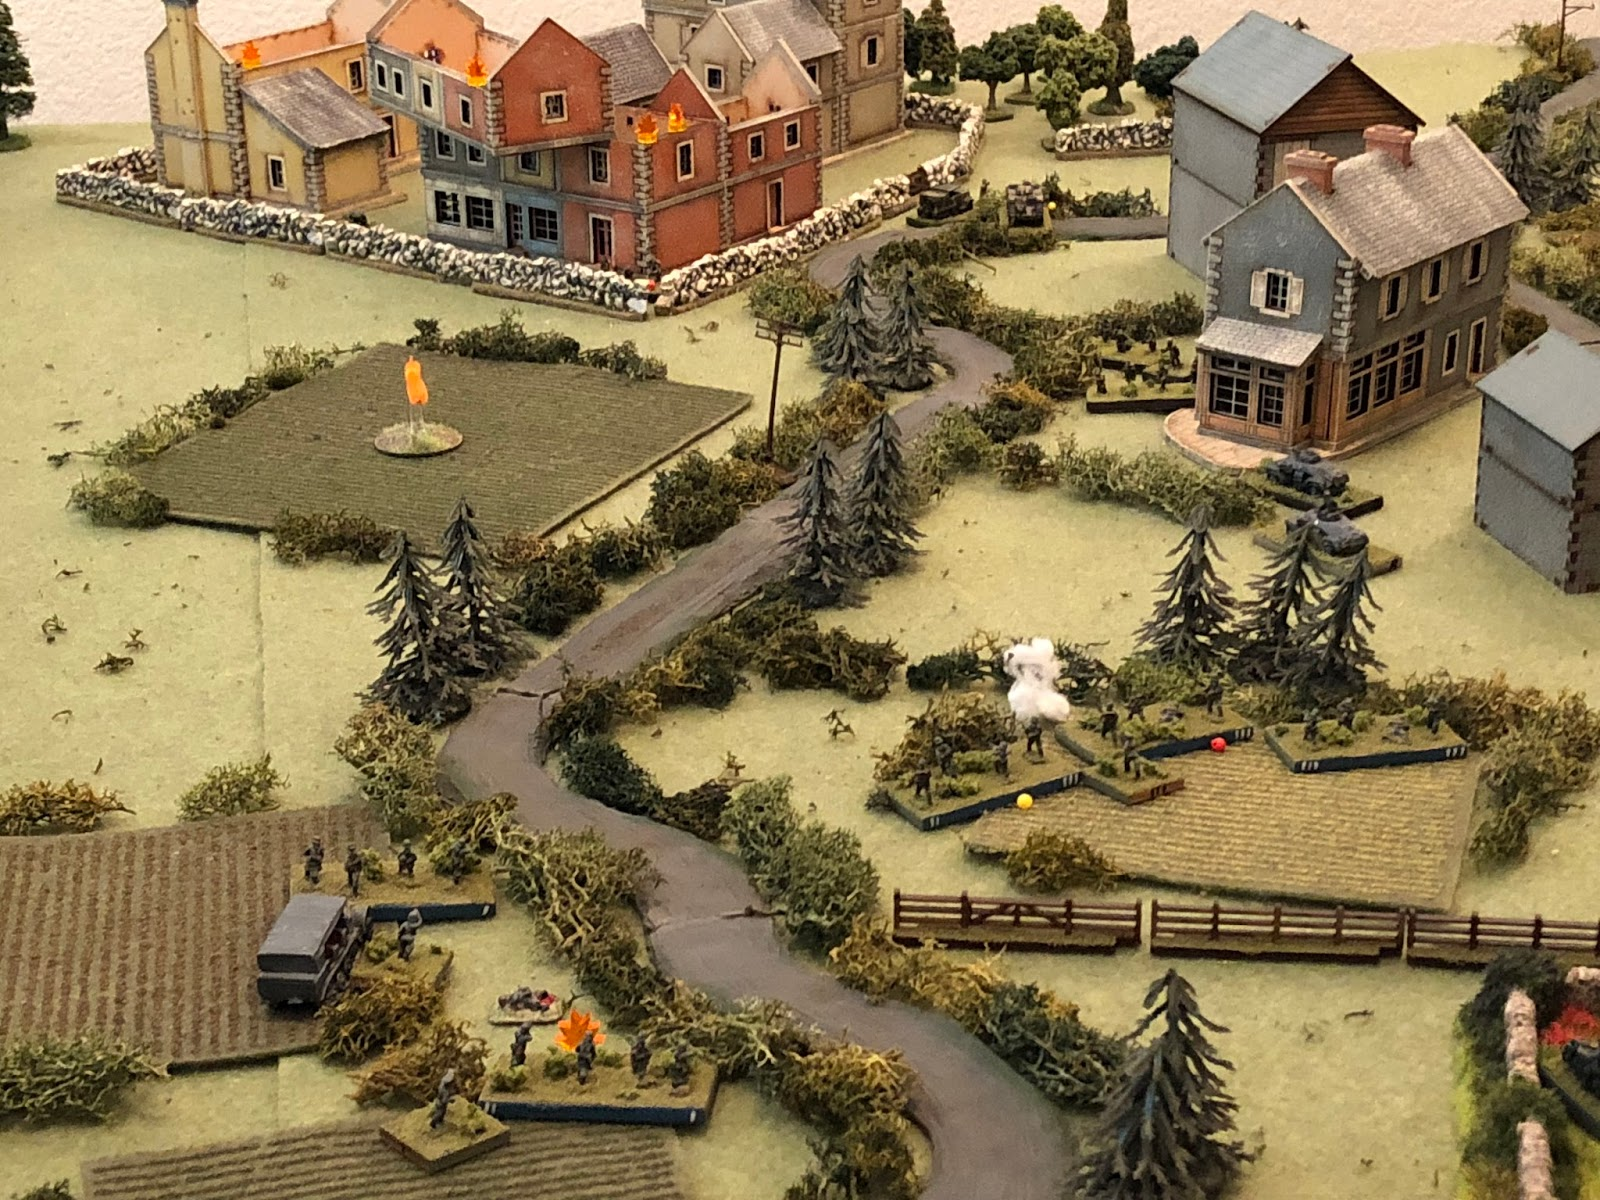 While Sgt Lehmkuh'ls squad (bottom left) fires on the enemy machine gun position (top left, in yellow building).